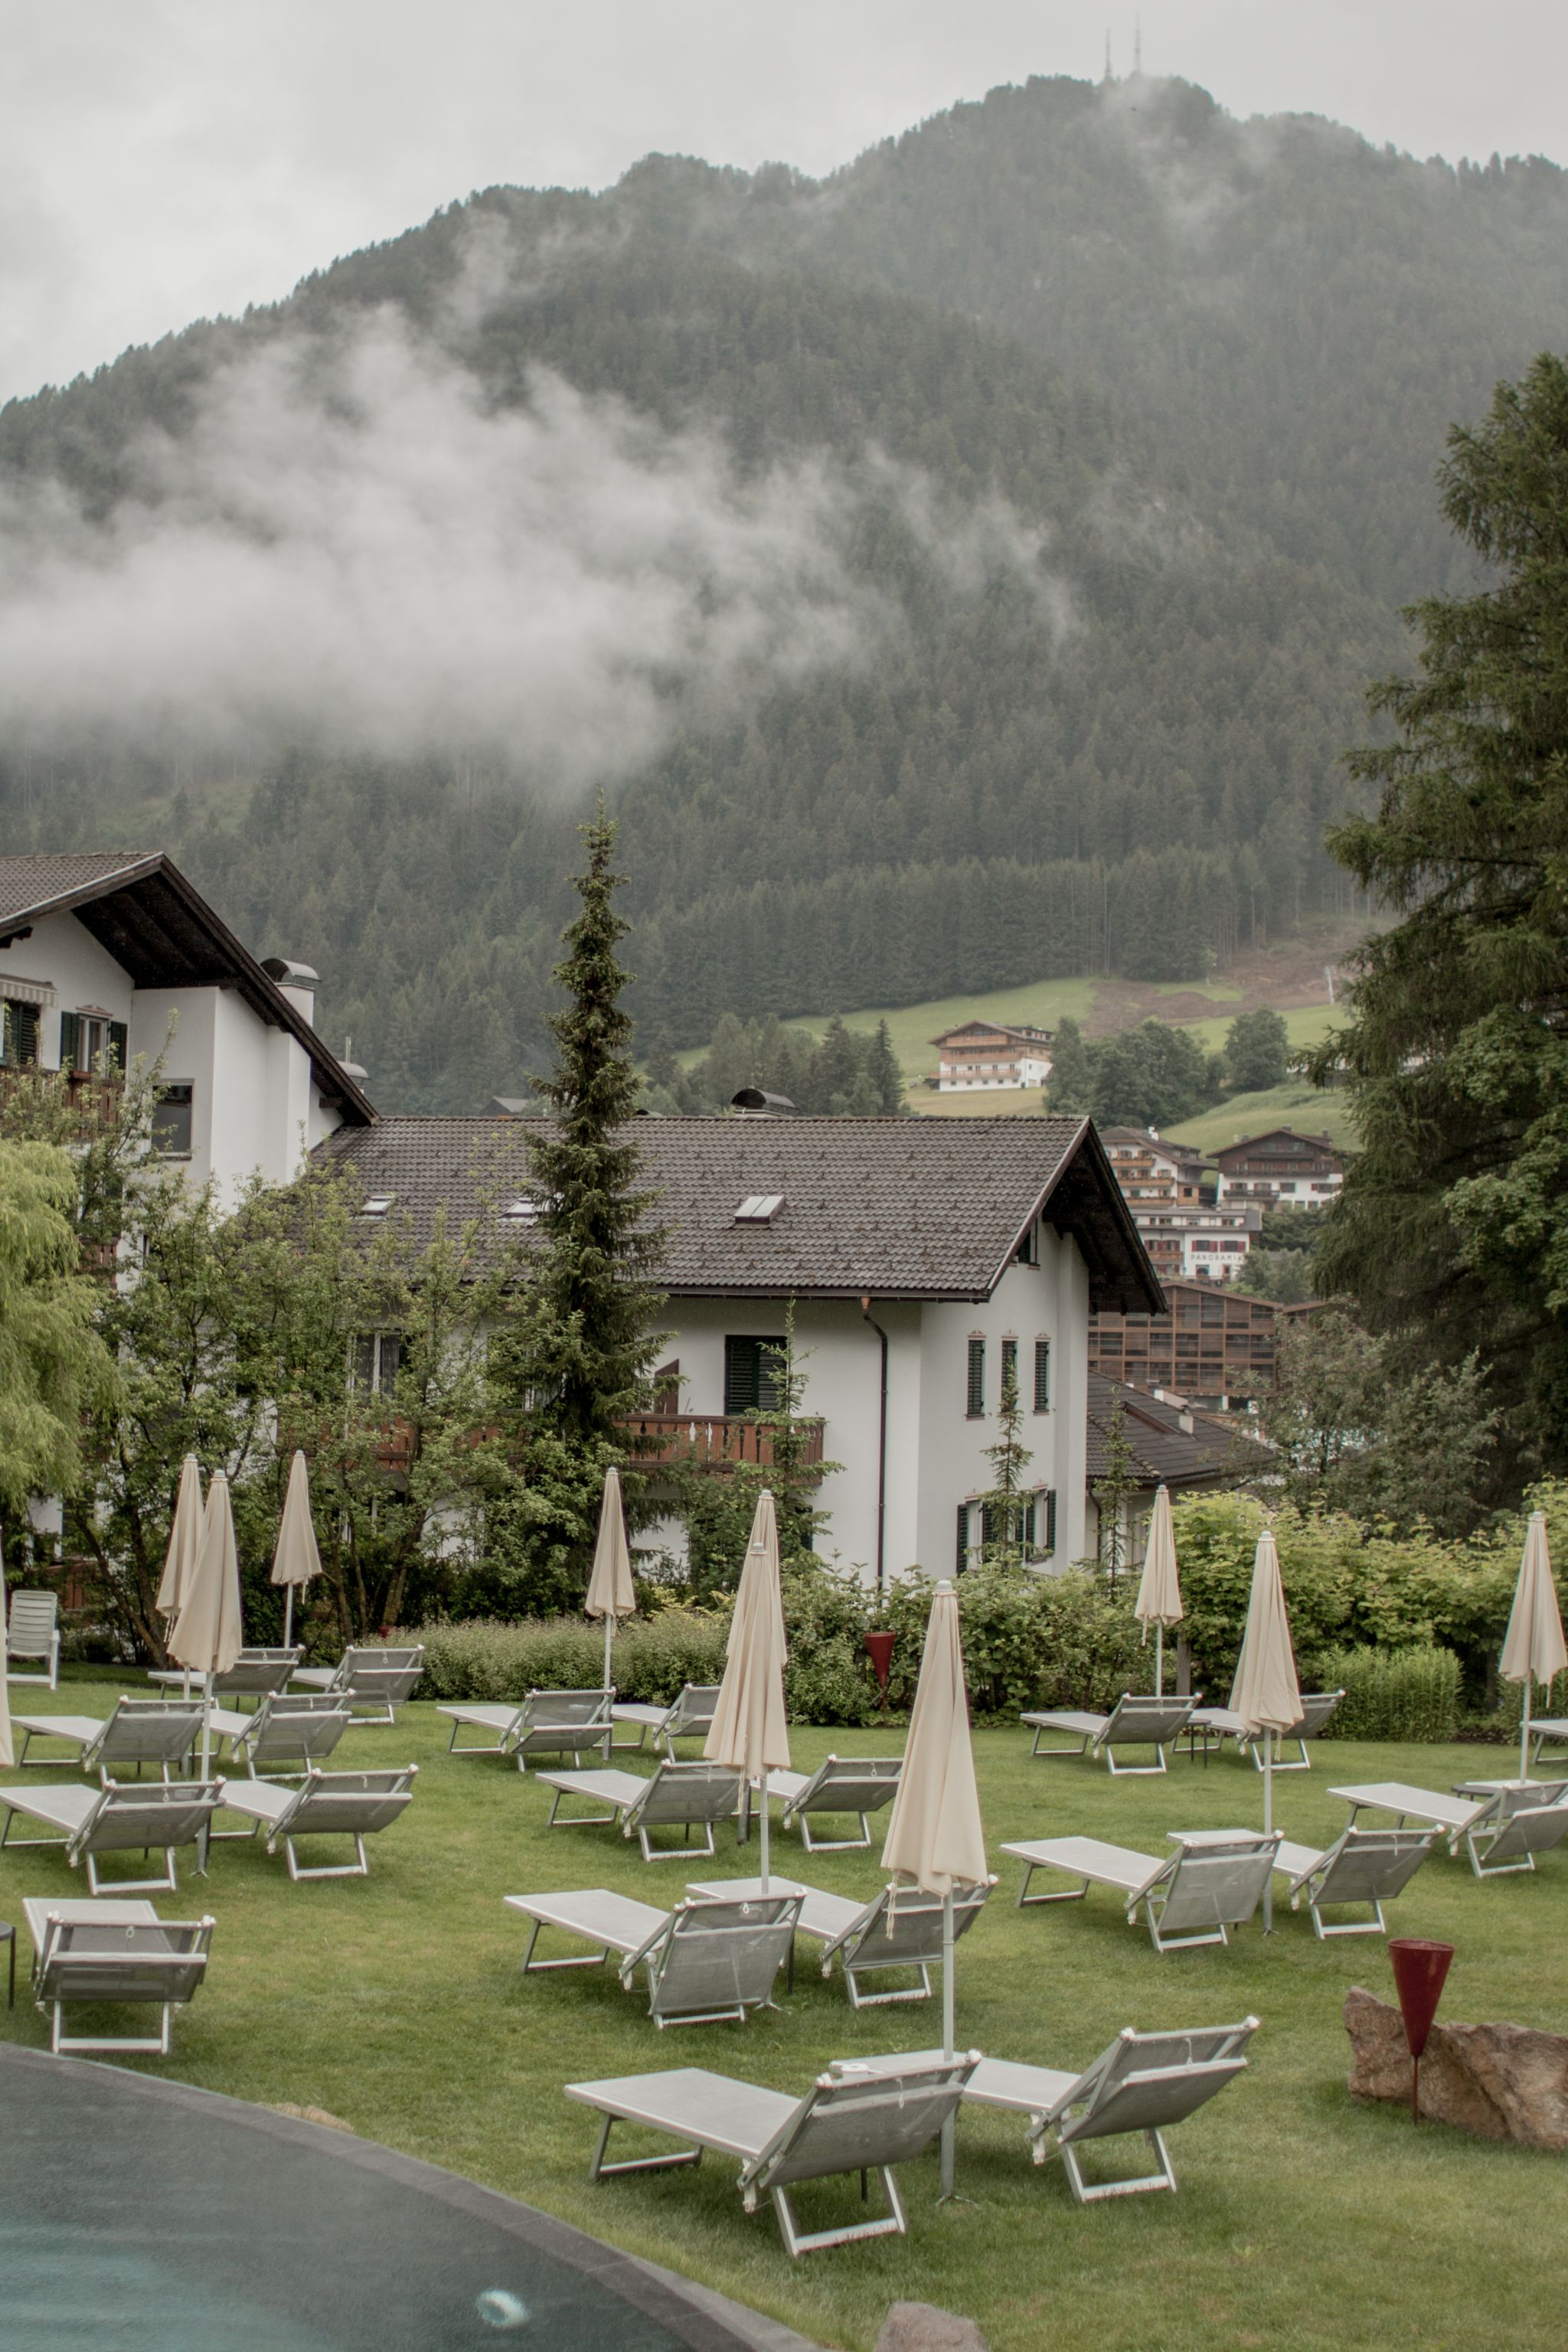 Adler Dolomites Hotel Ortisei Italy Hotel Hospitality Brand Photography Exterior pools cloud coverage